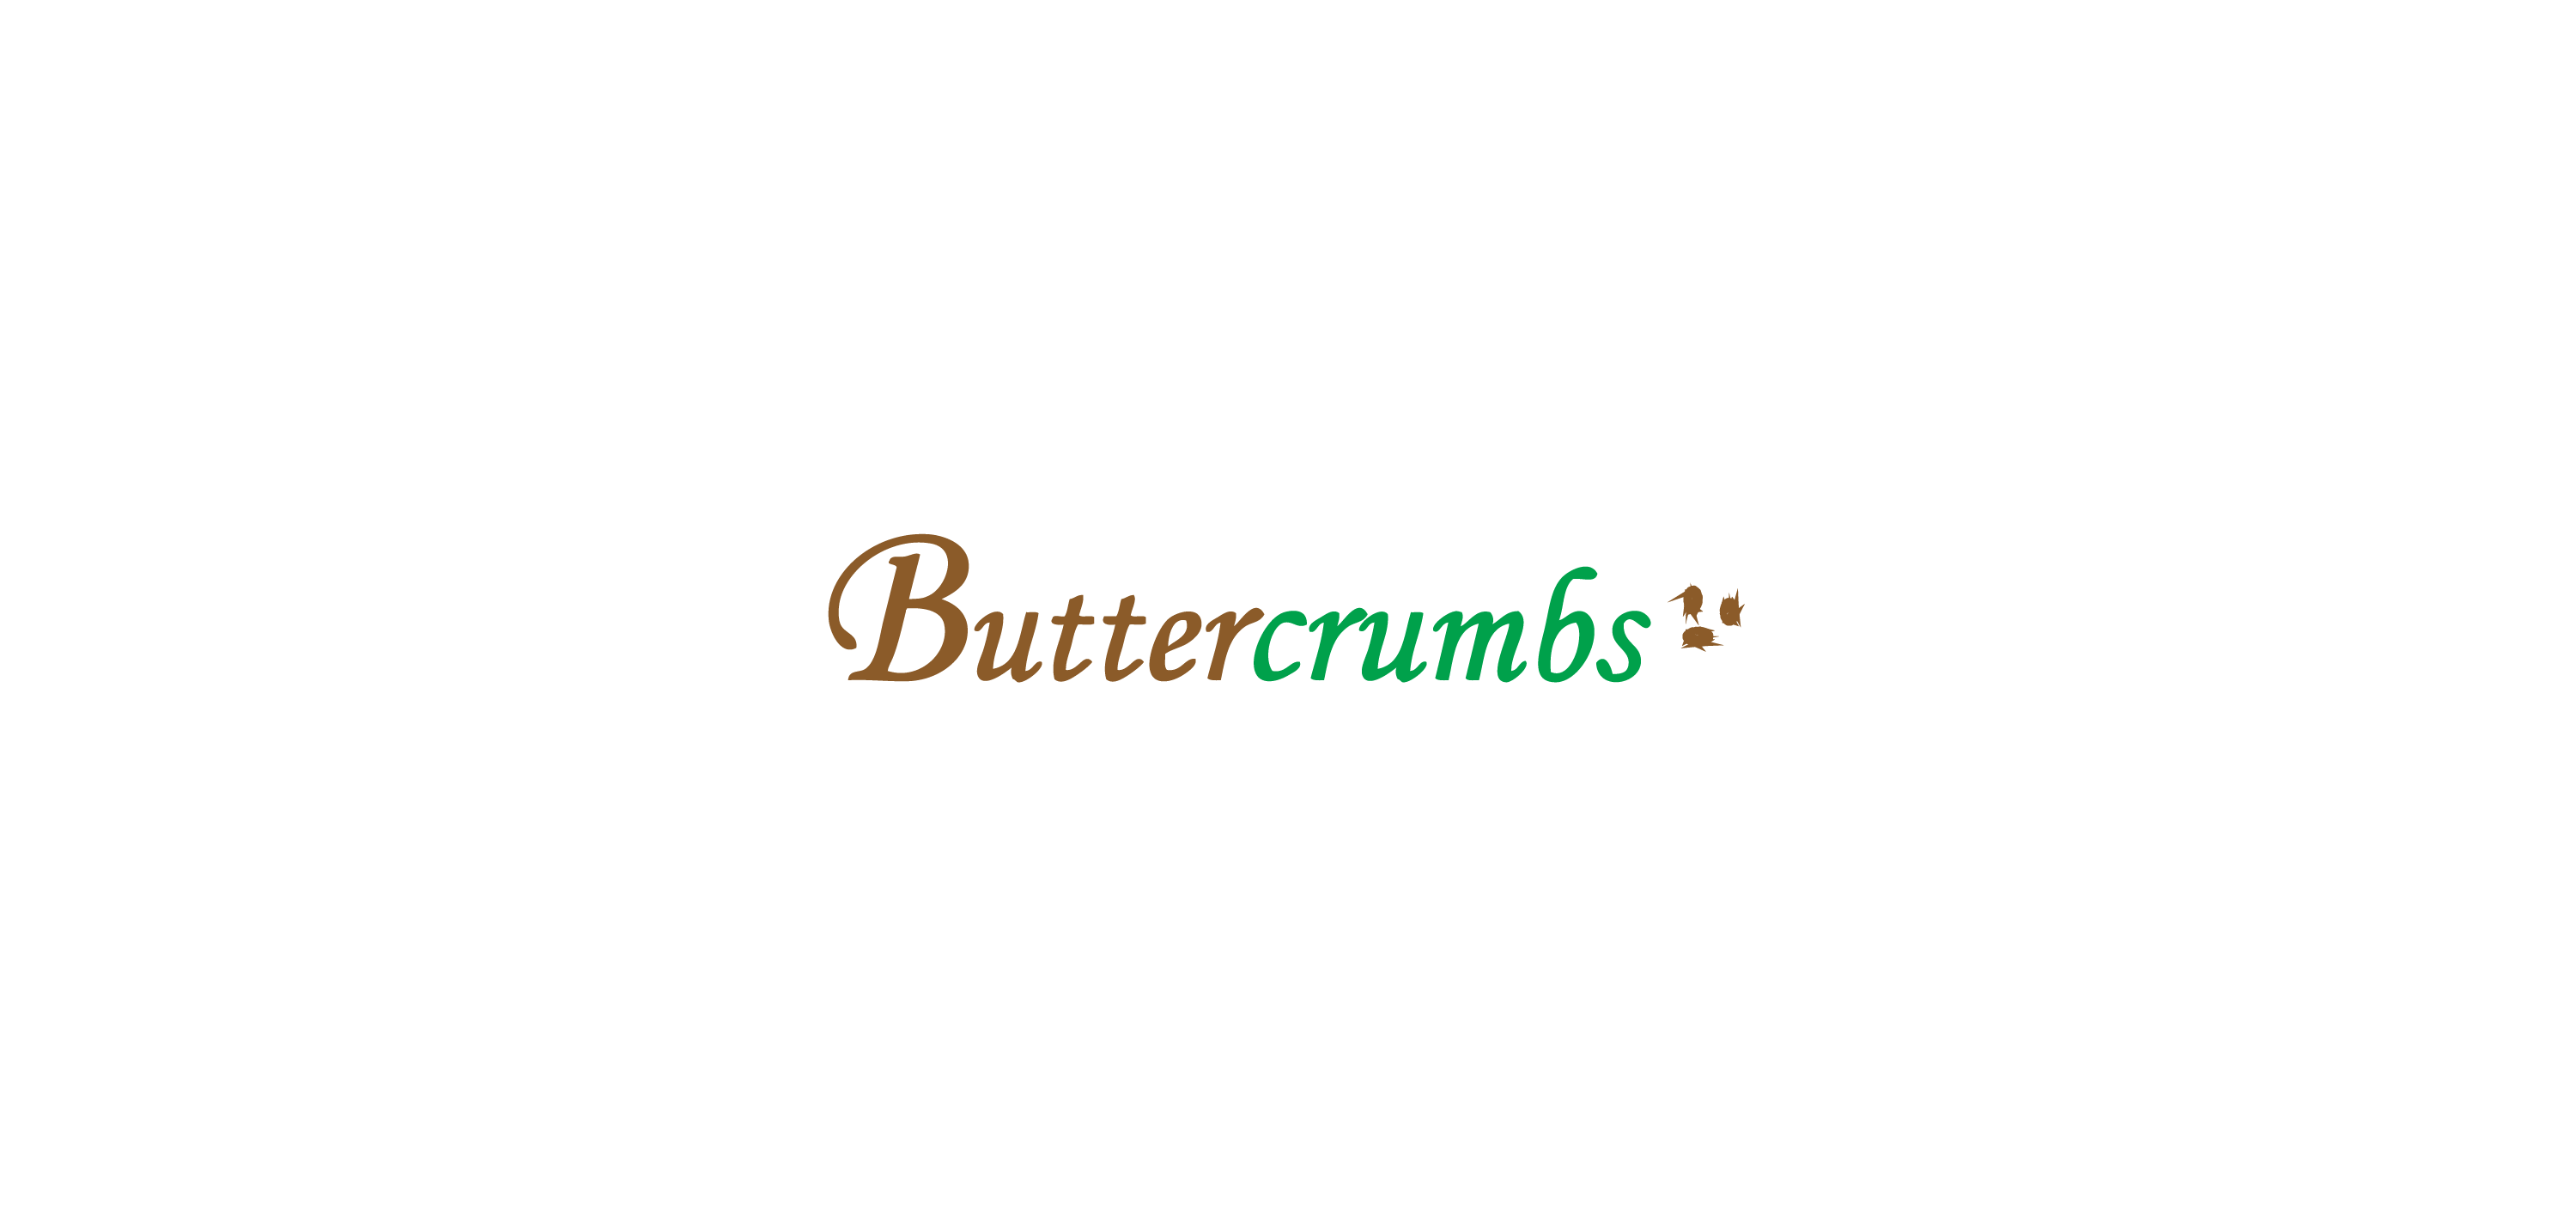 buttercrumbs logo vector-01